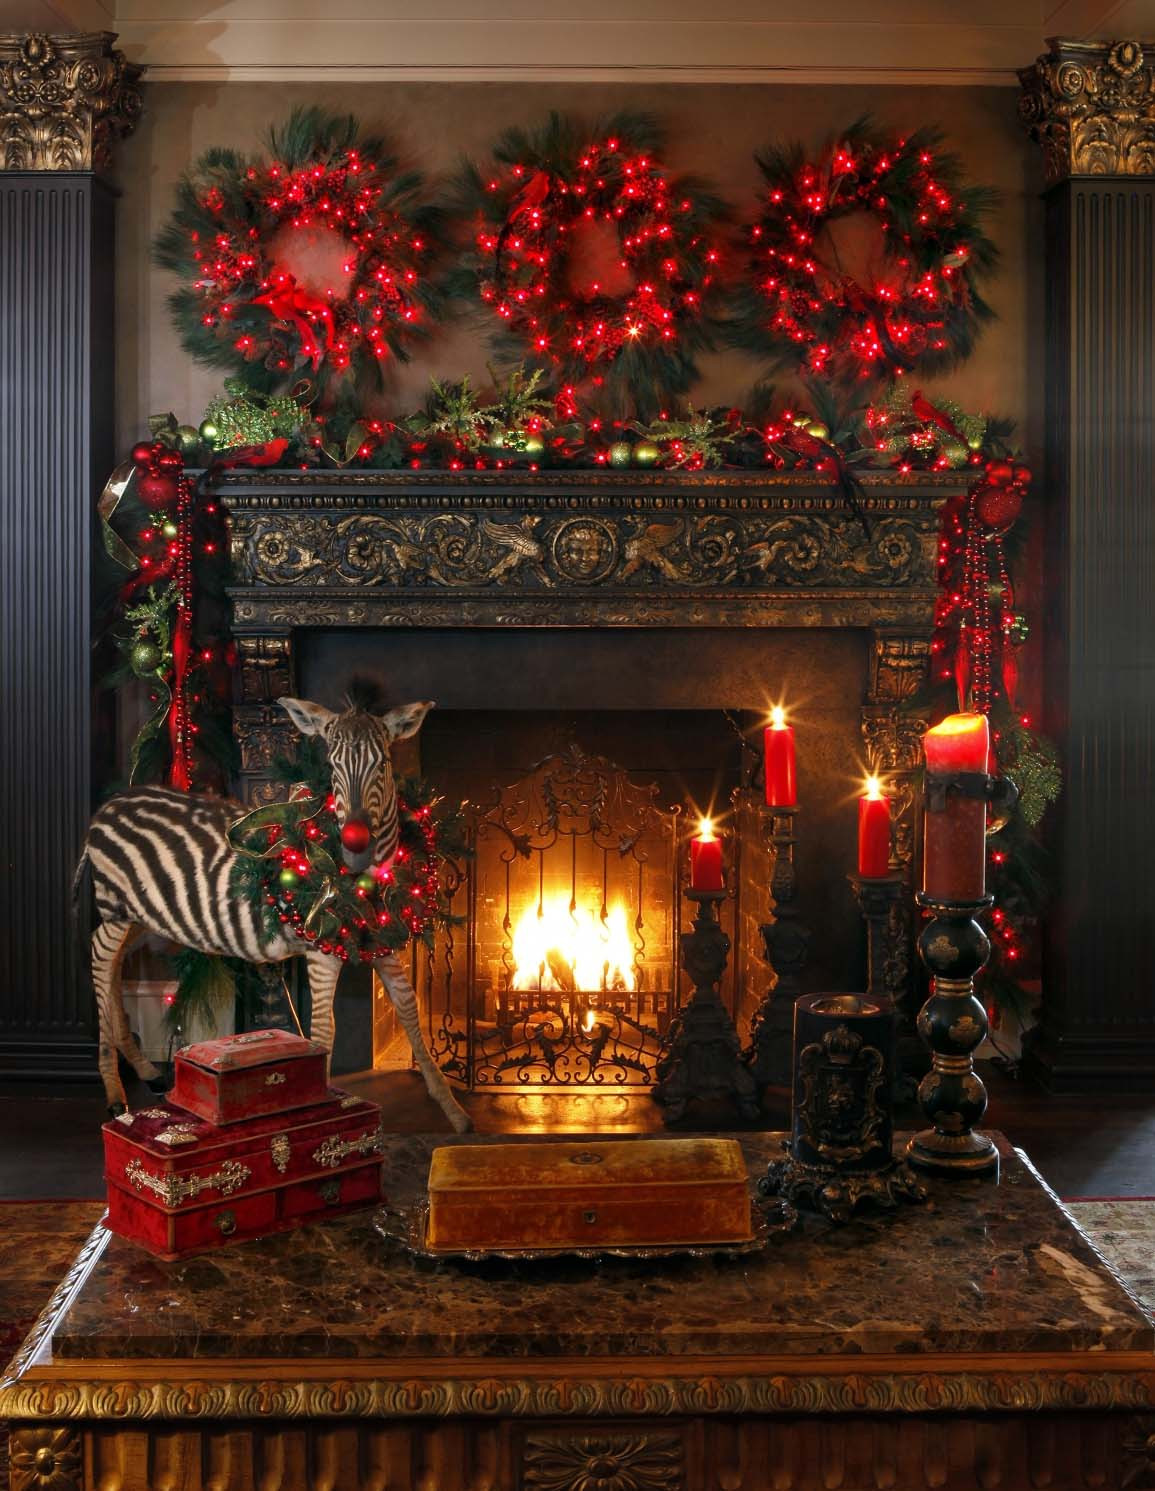 Christmas Decorators Lovely 50 Absolutely Fabulous Christmas Mantel Decorating Ideas Of Christmas Decorators New 46 Beautiful Christmas Porch Decorating Ideas — Style Estate